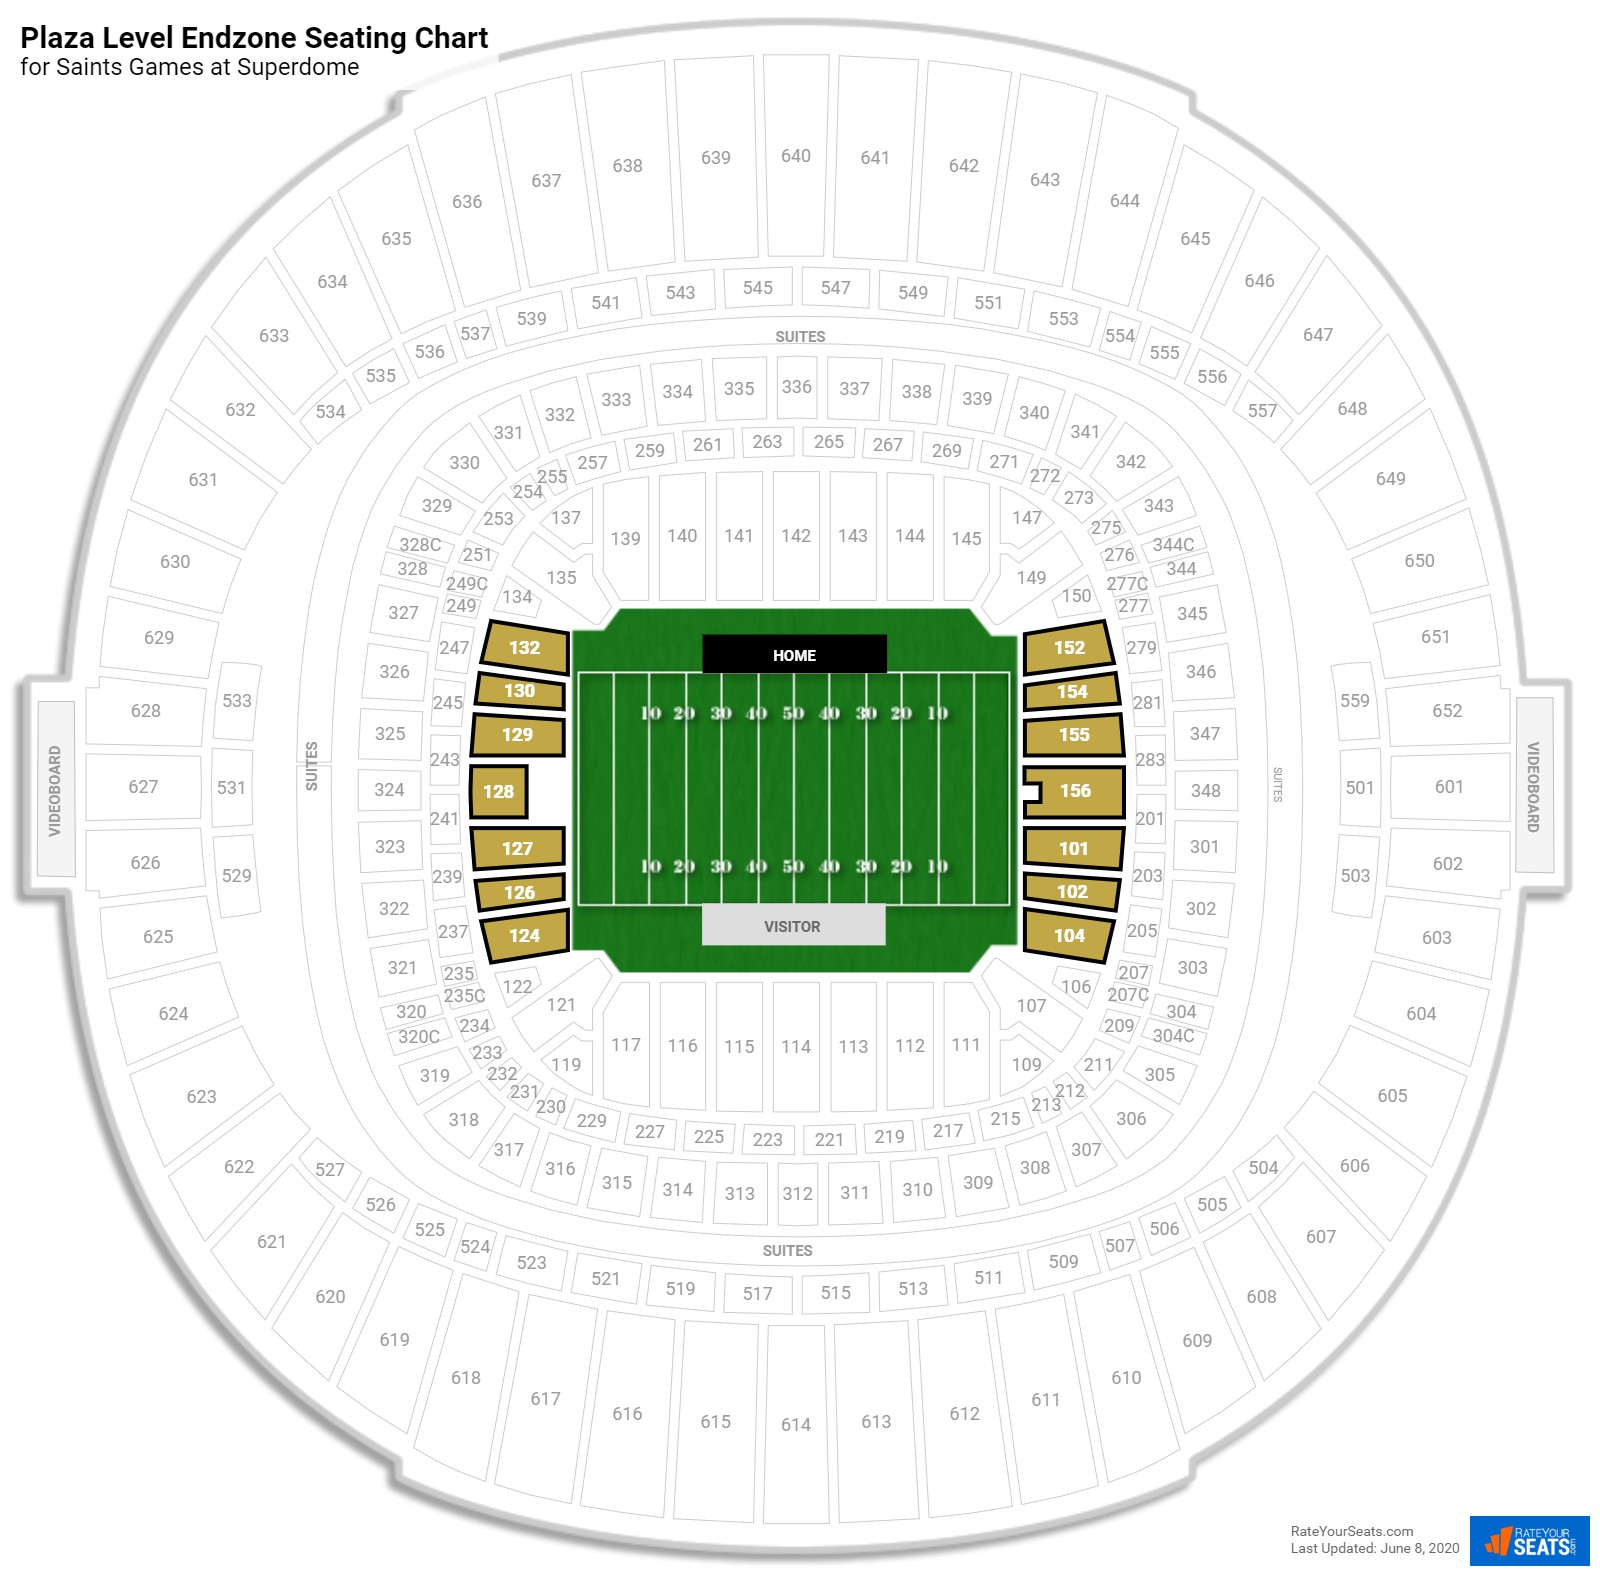 Superdome Plaza Level Endzone seating chart